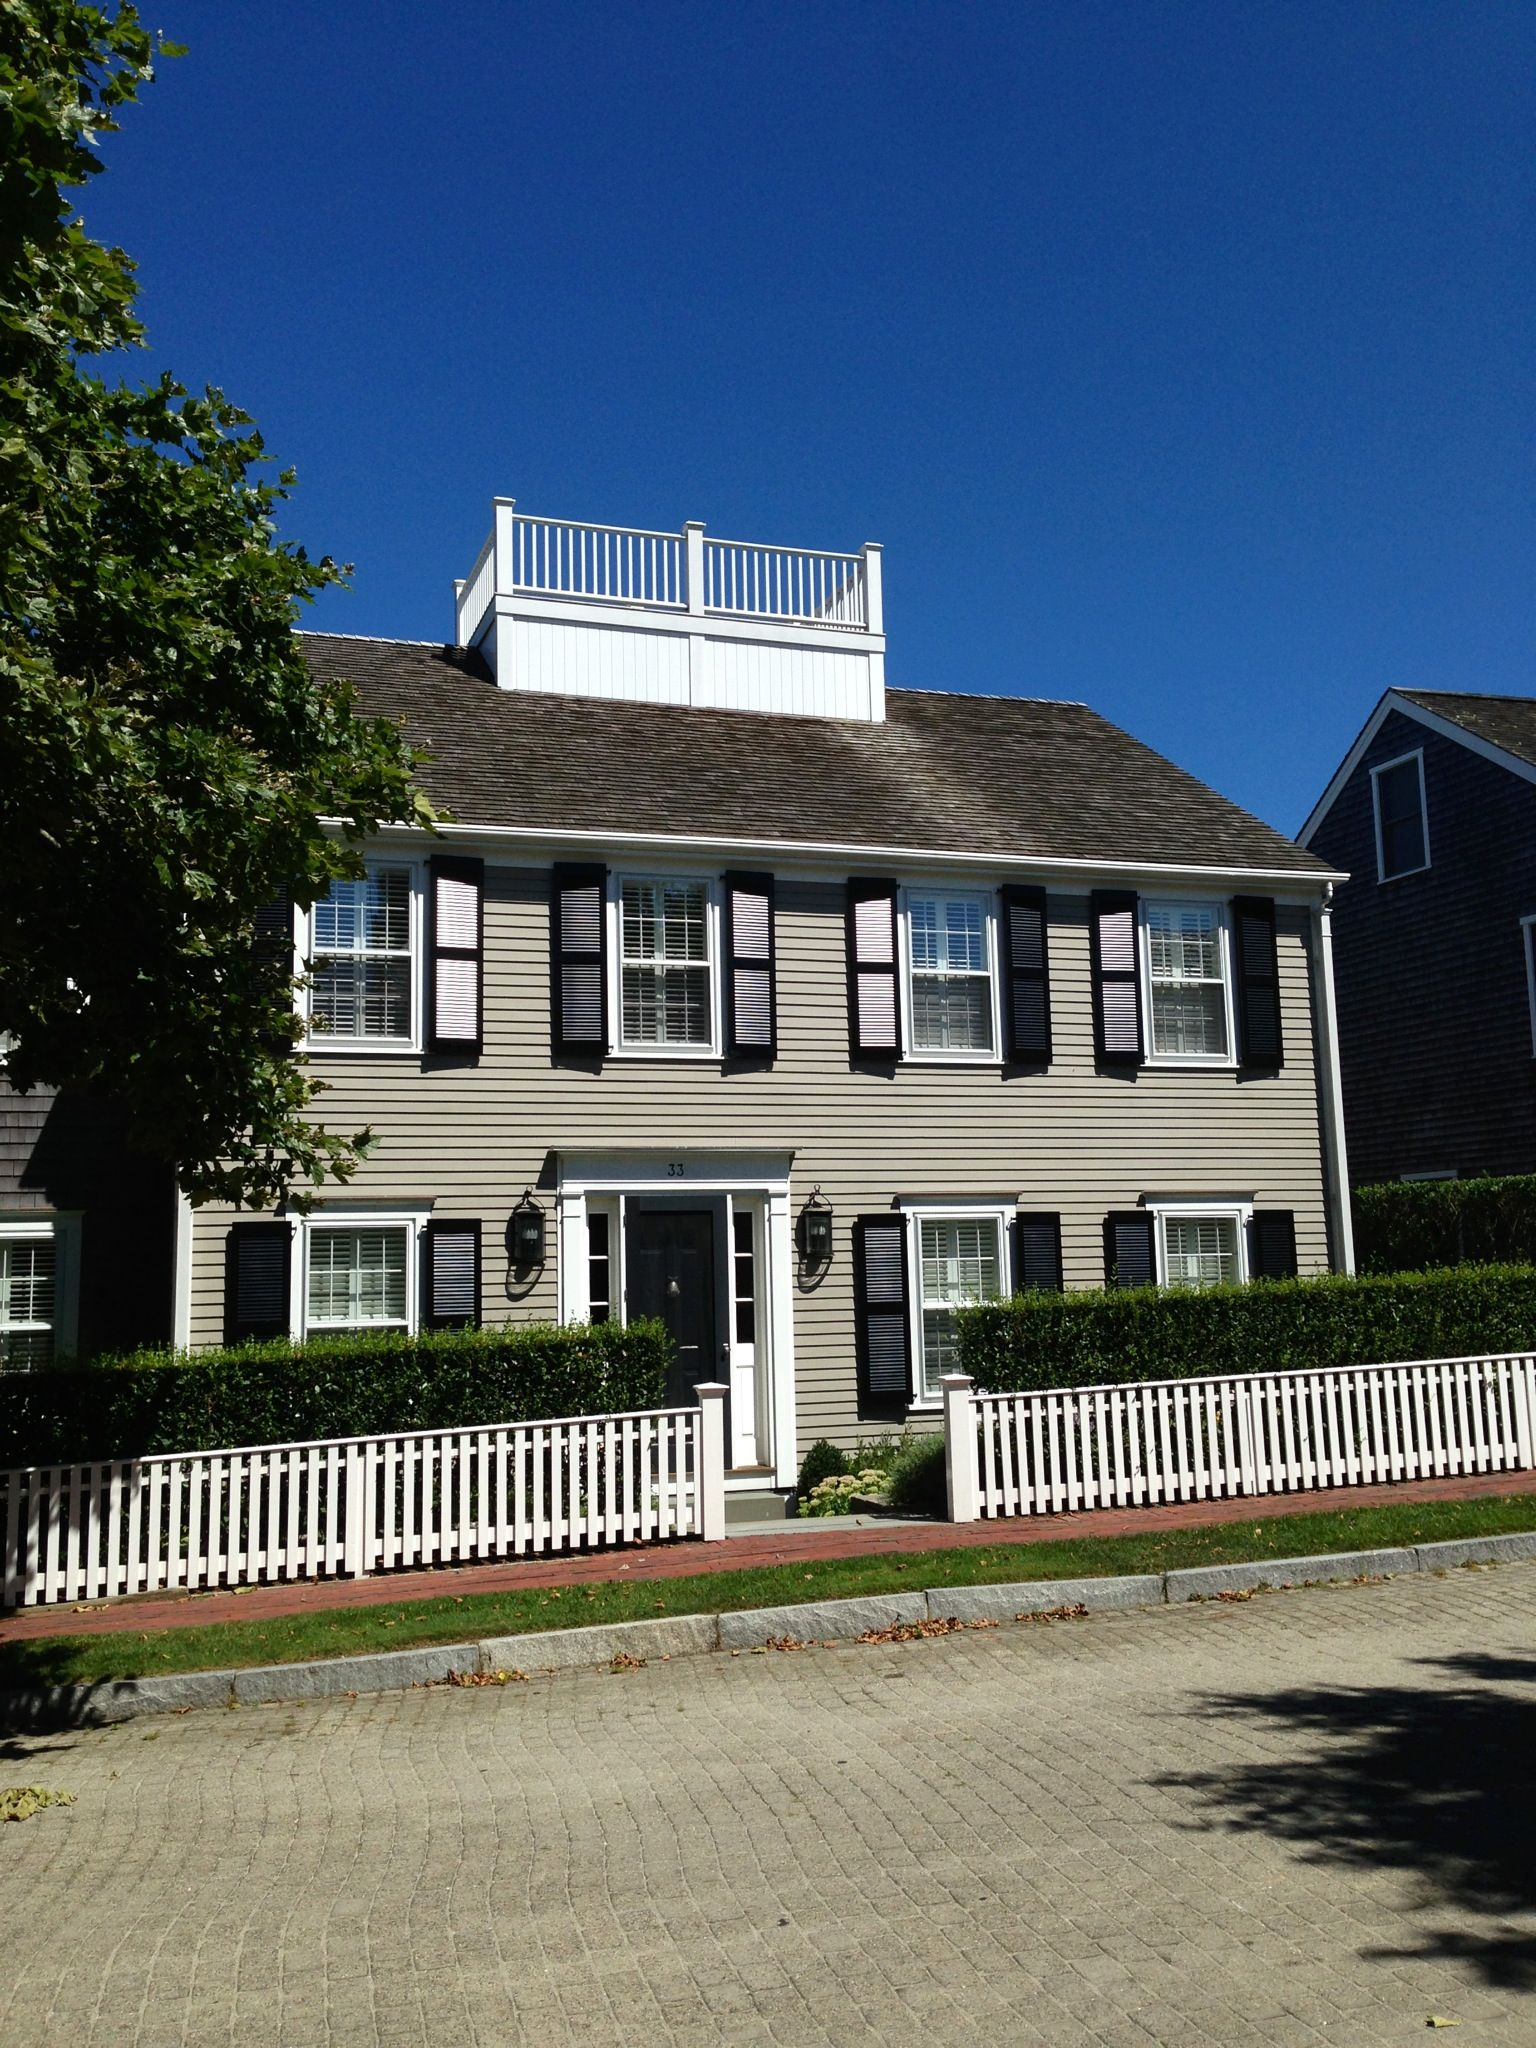 Briarwood Benjamin Moore Home Exterior Paint With Black Shutters At Our Home In Nantucket